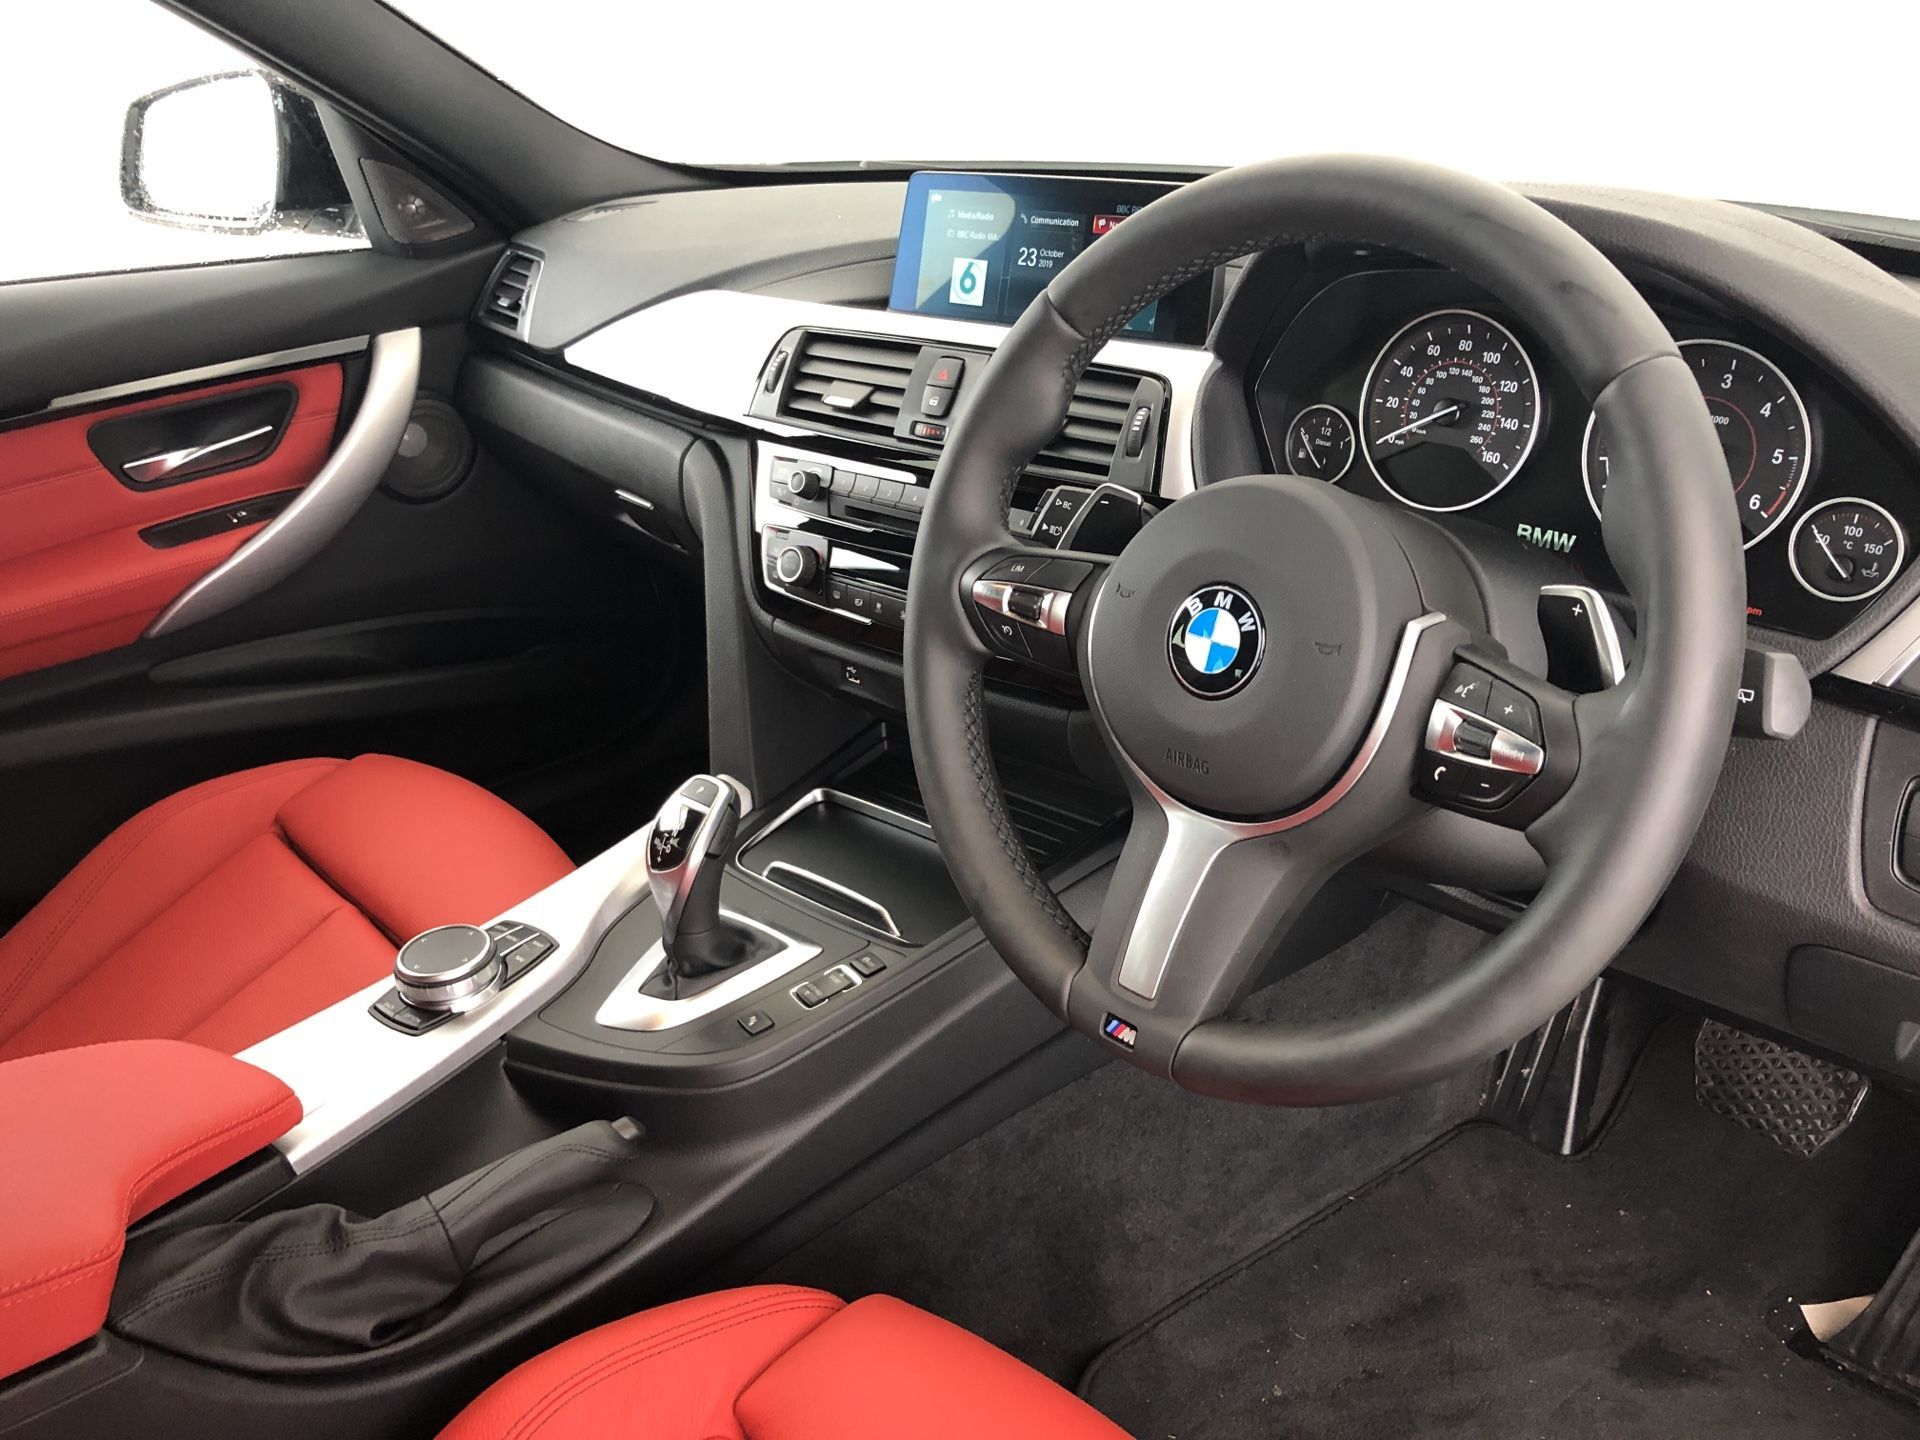 Image 4 - BMW 320d M Sport Shadow Edition Touring (YF19GDX)